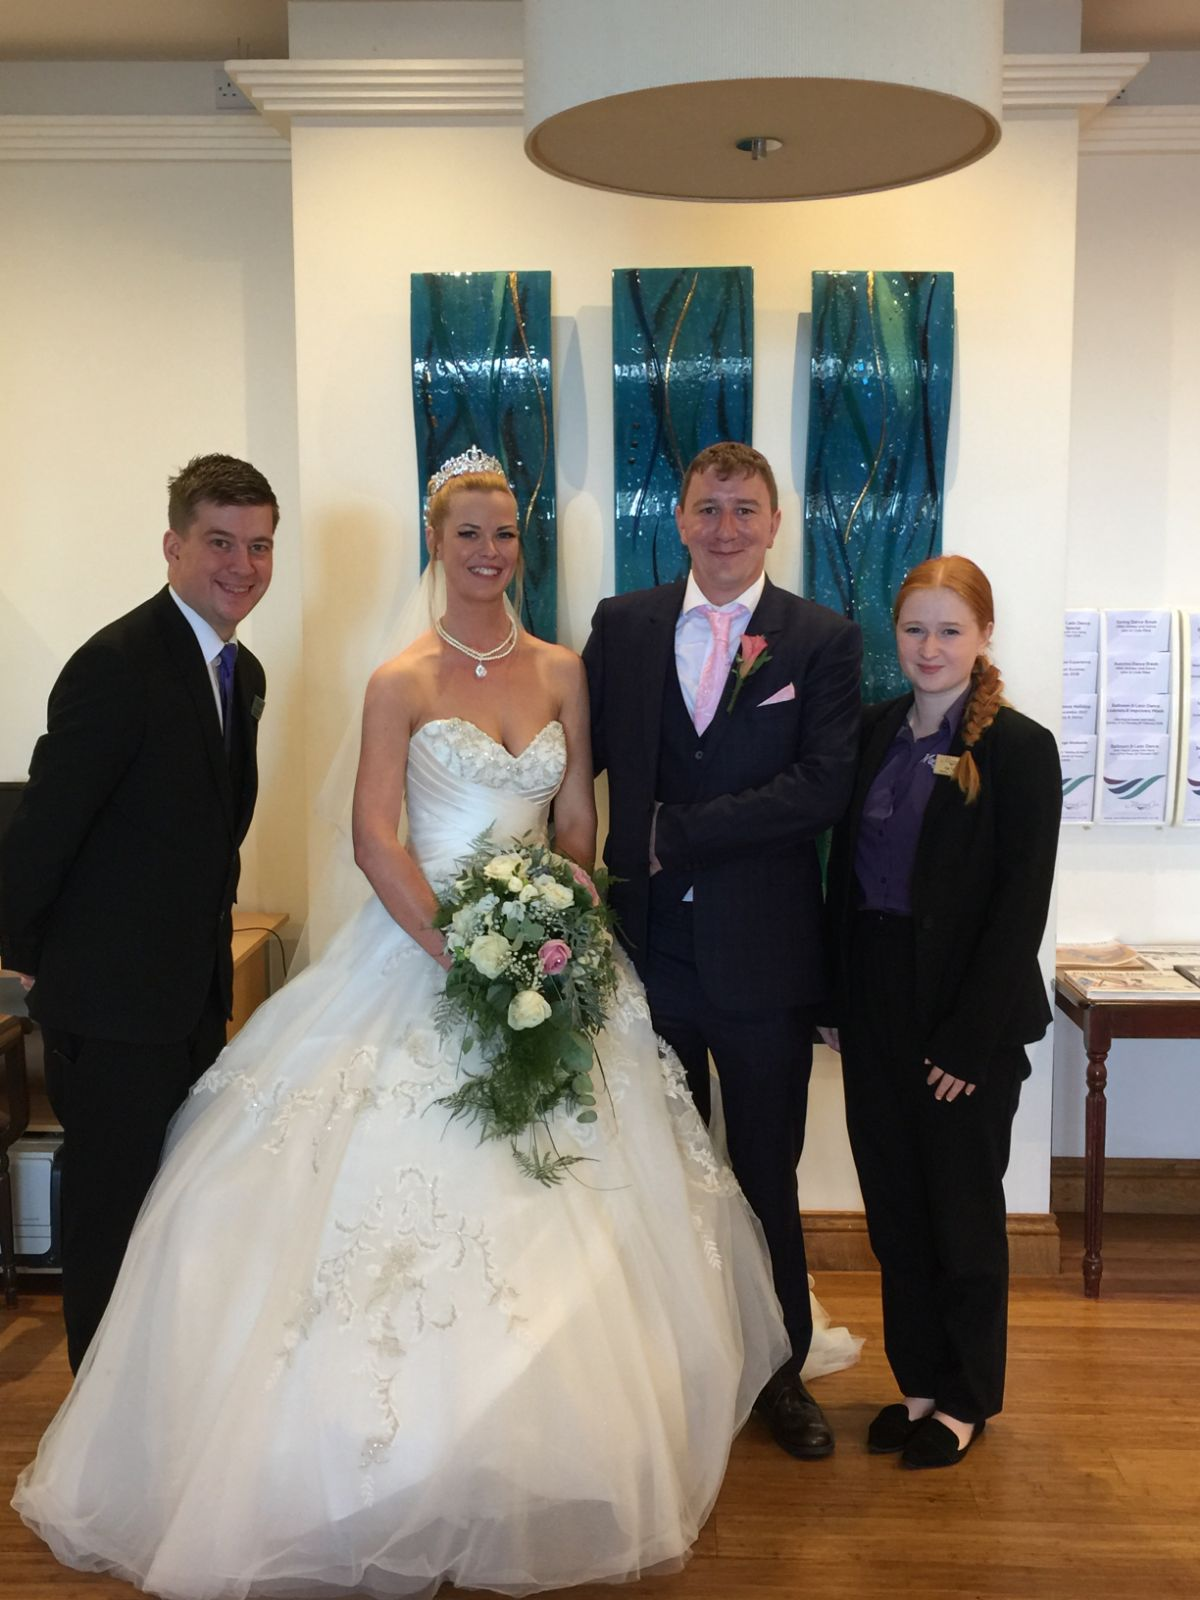 Andy, Operations Manager with Kat, Wedding Coordinator and the happy couple!